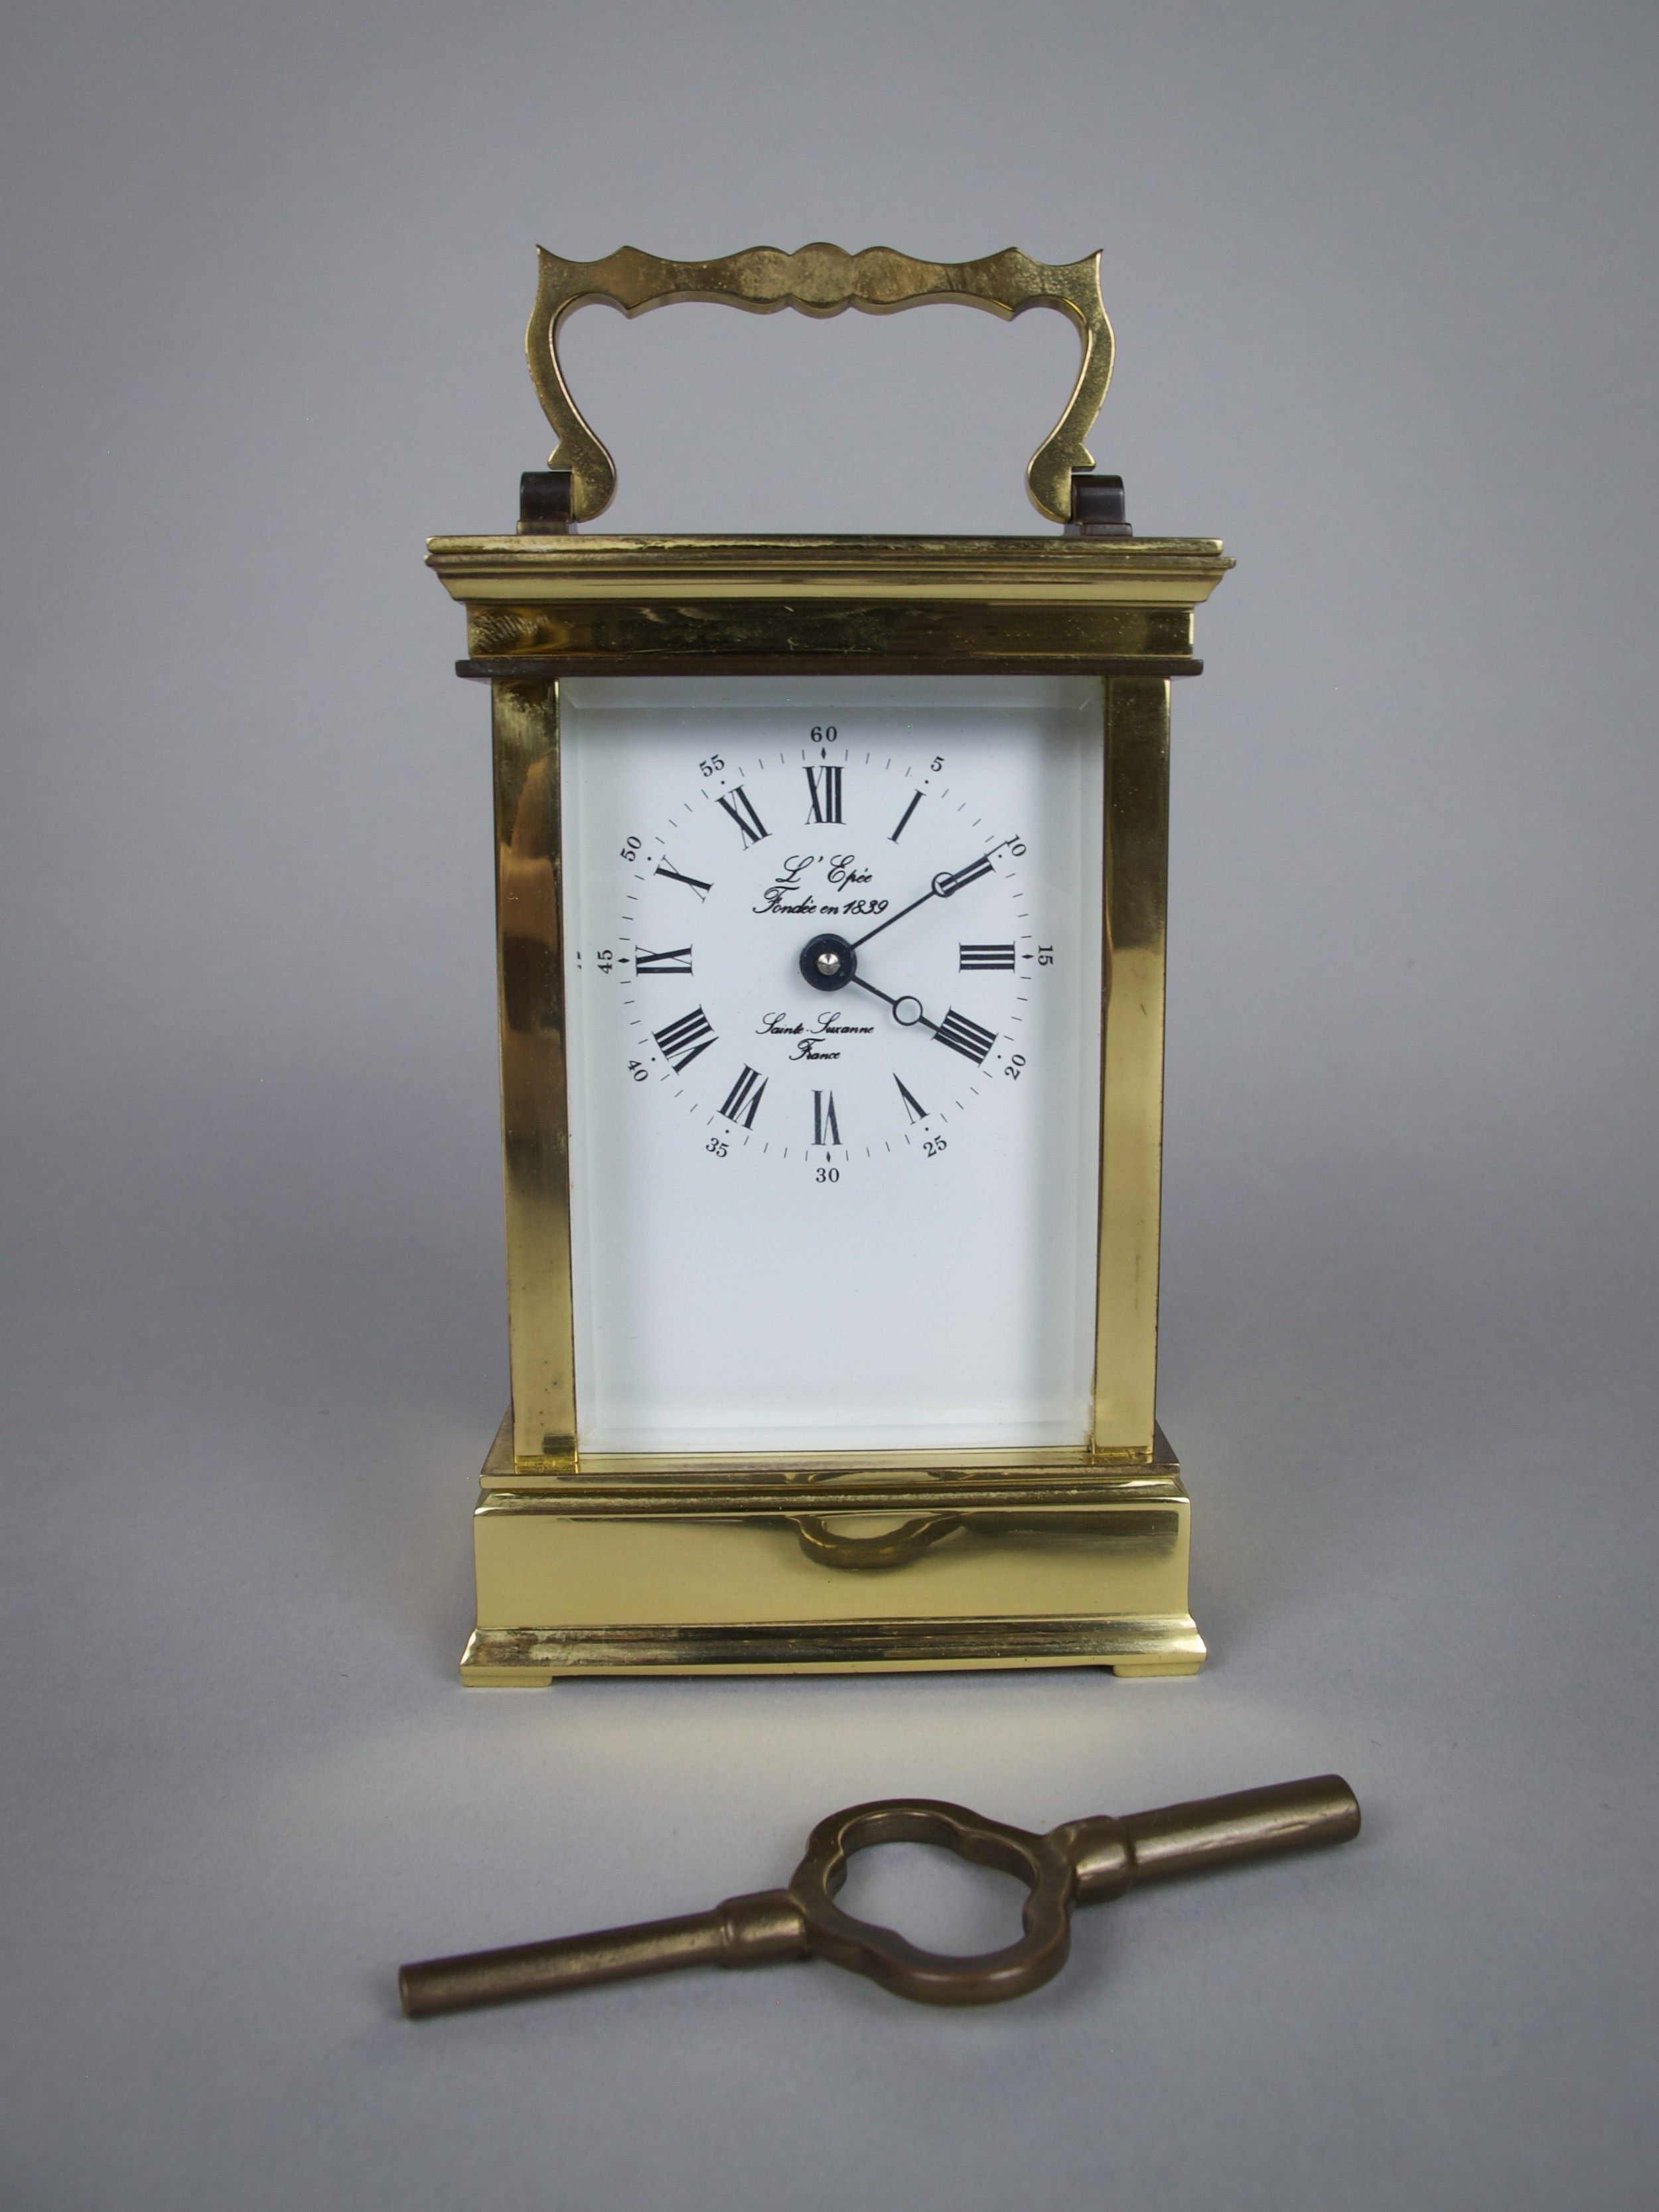 20th century l'epee french brass carriage clock with 8 day movement